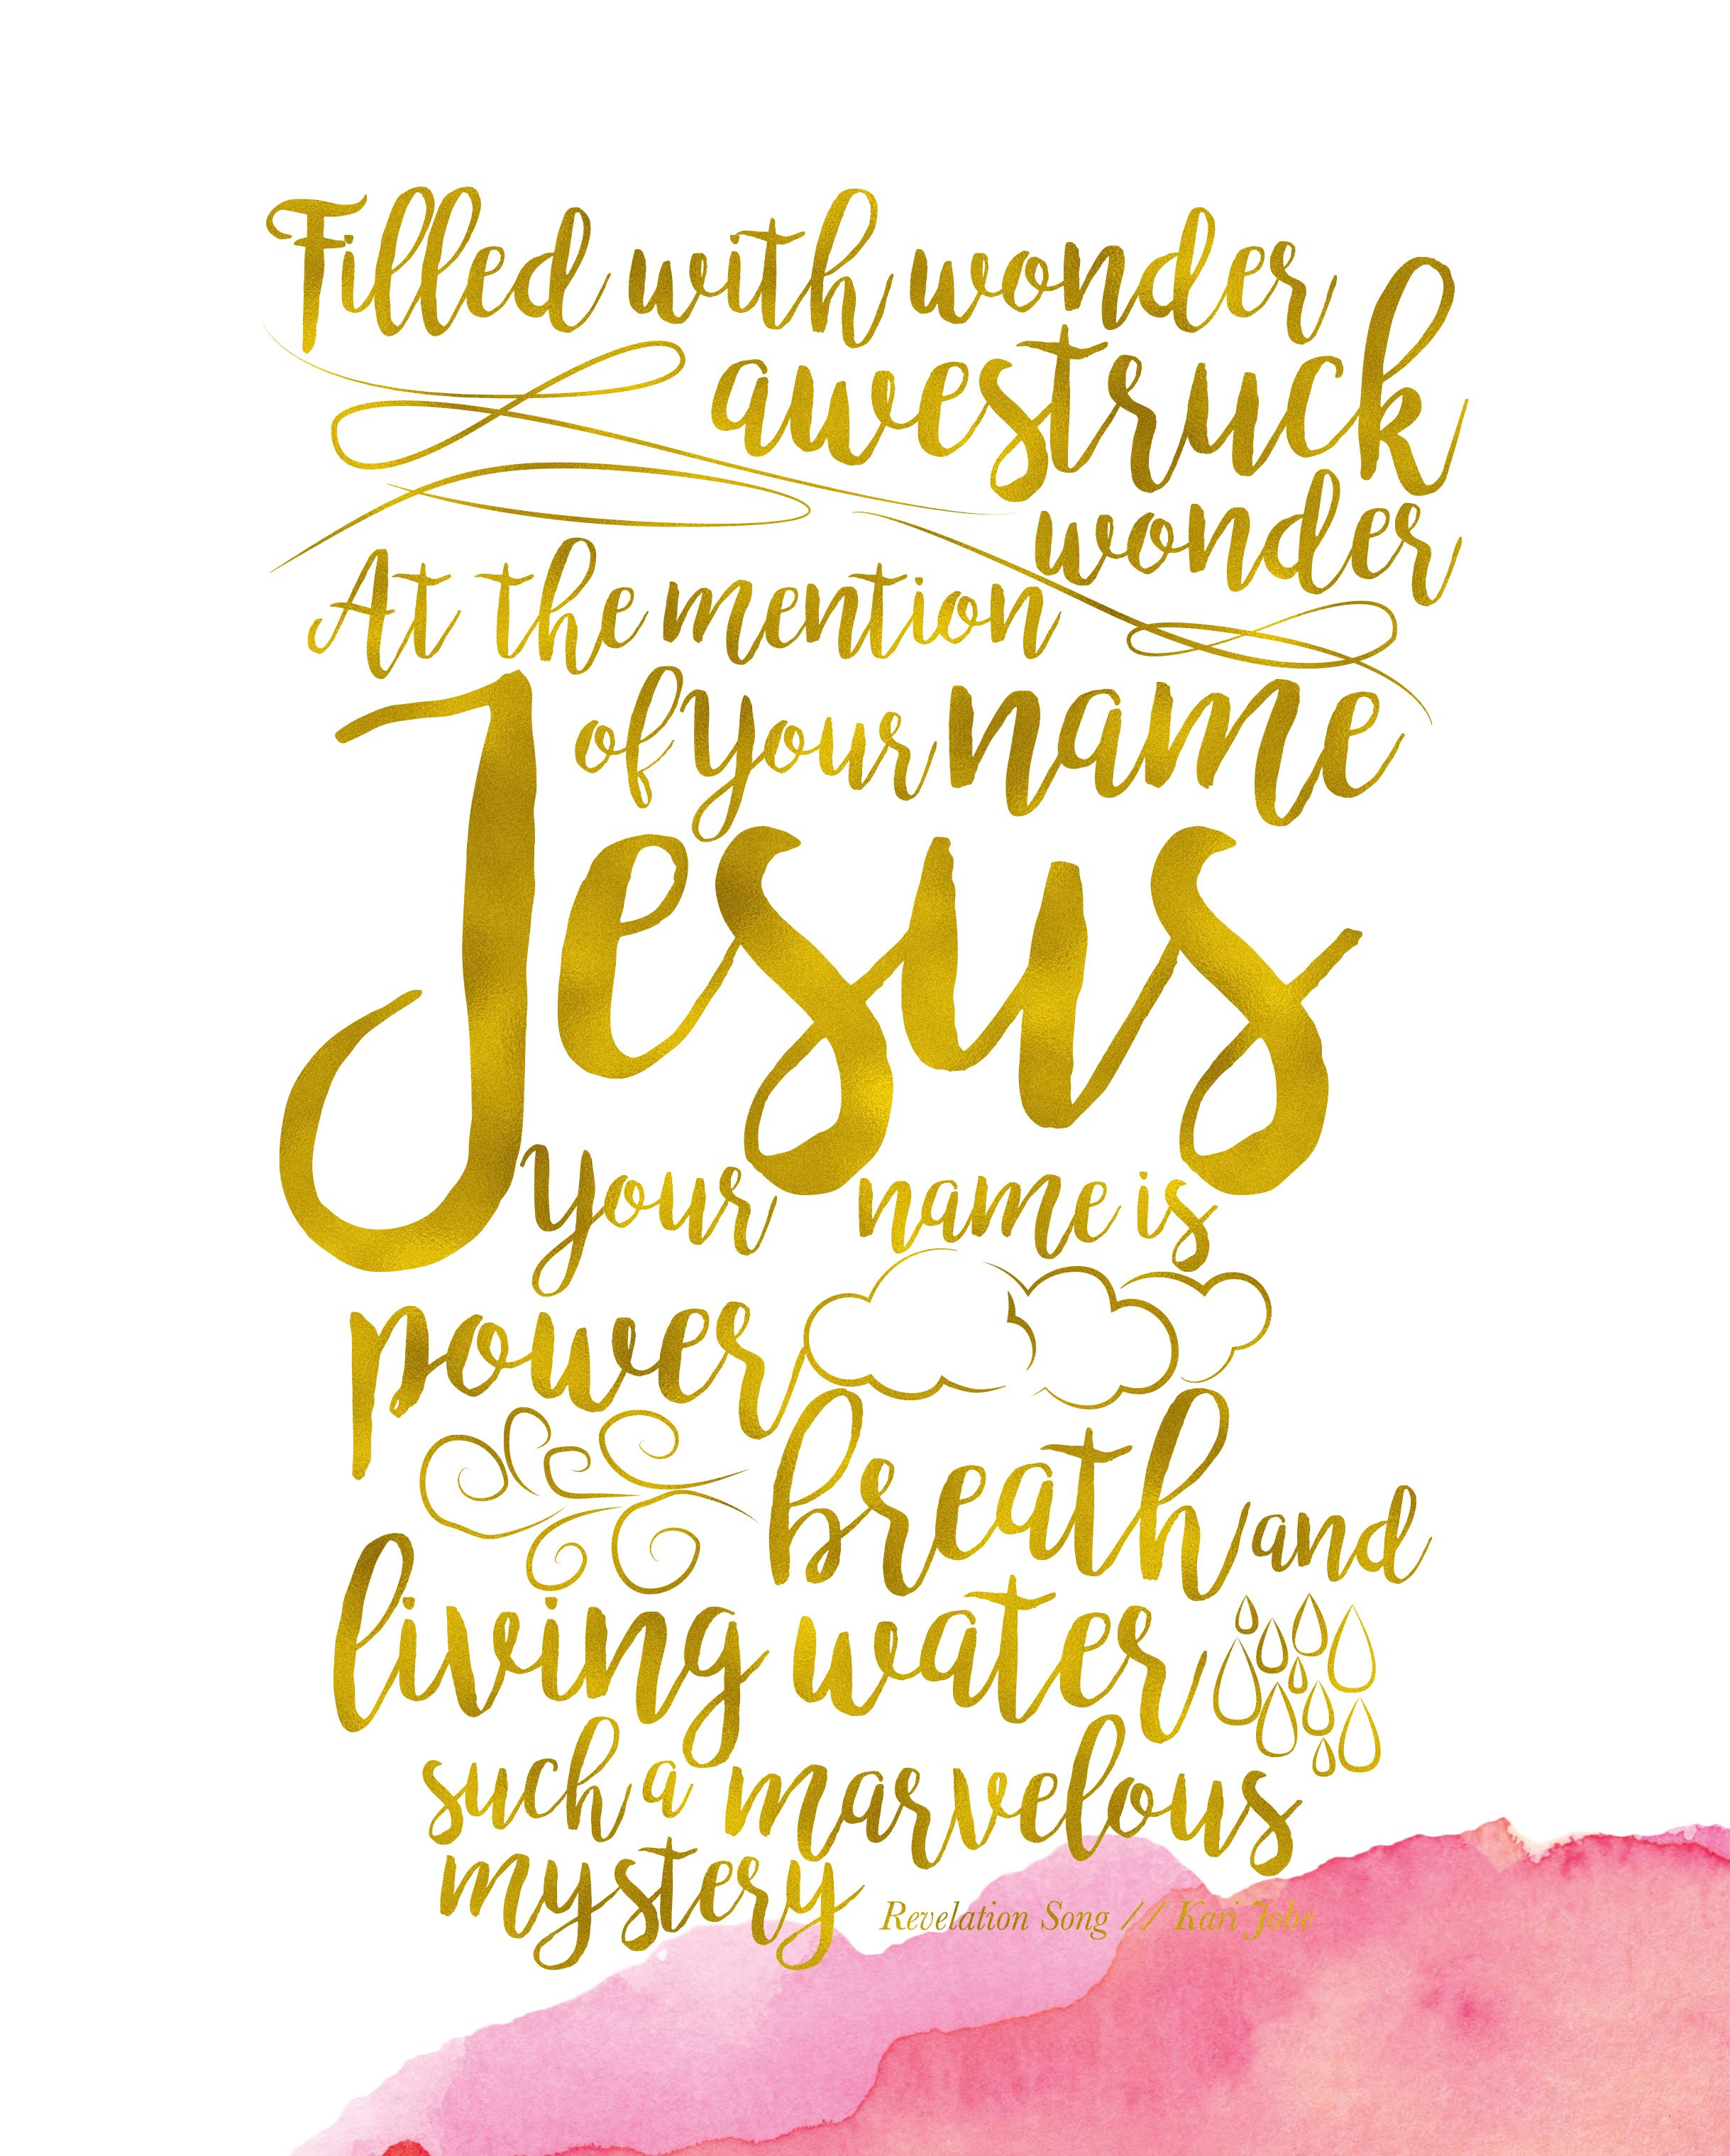 Revelation Song Verse | 8x10 Print Filled with wonder, awestruck ...